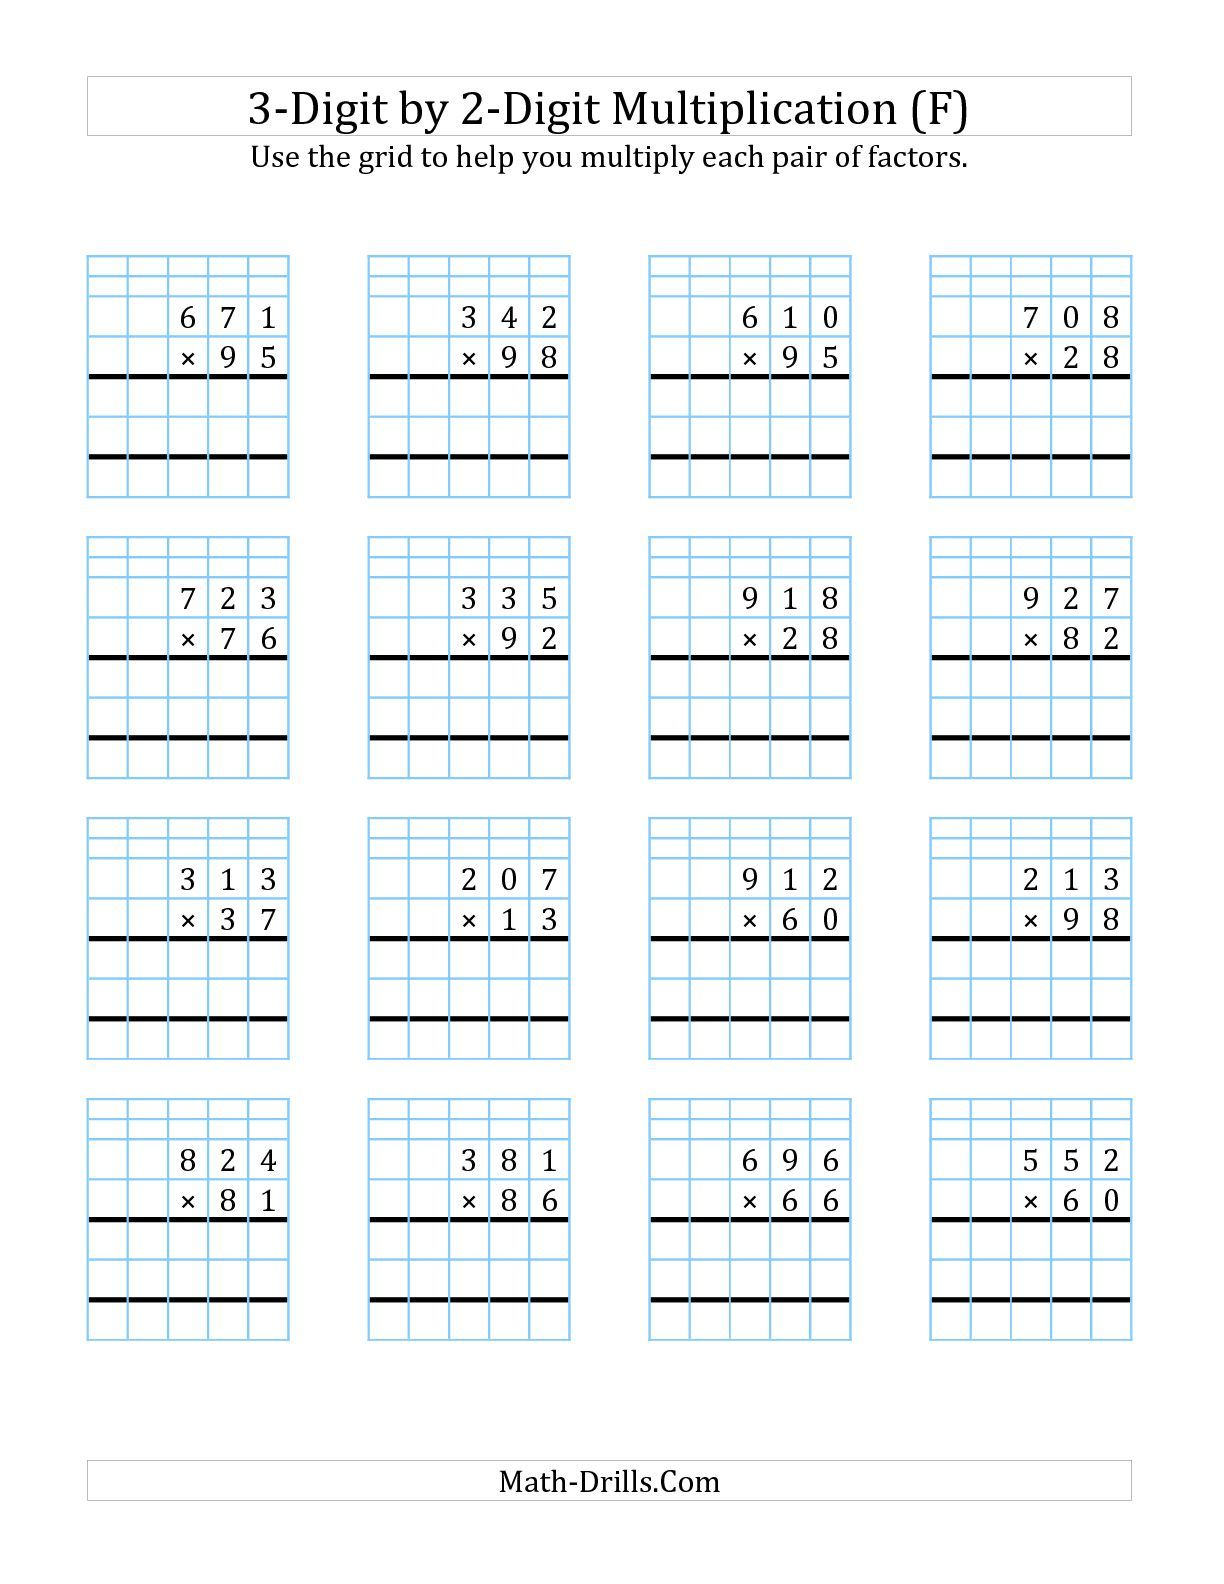 The 3 Digit by 2 Digit Multiplication with Grid Support F math